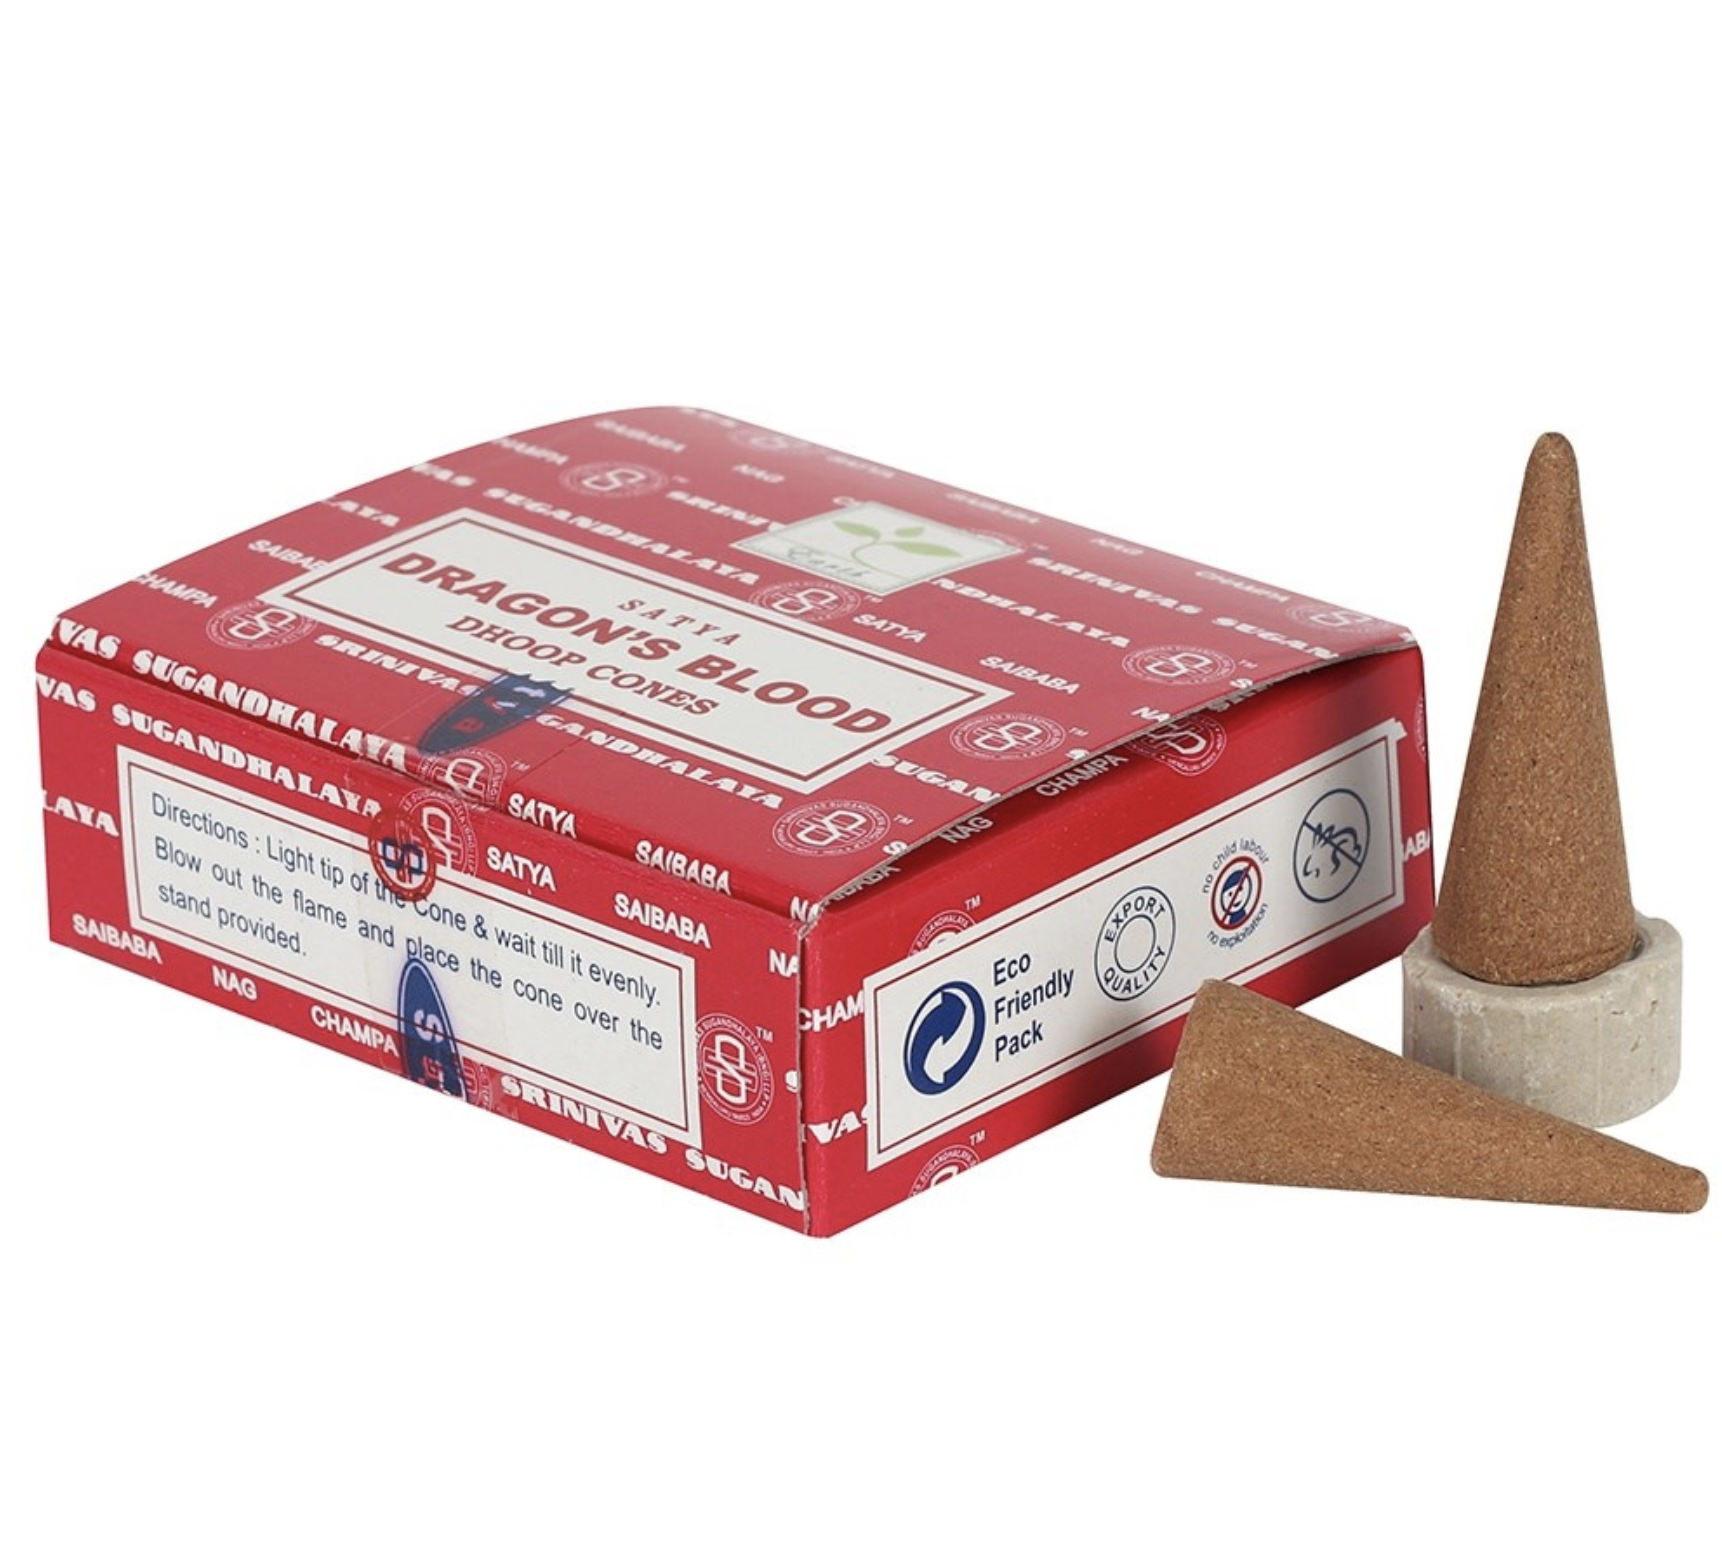 Dragons' Blood Dhoop cones Satya